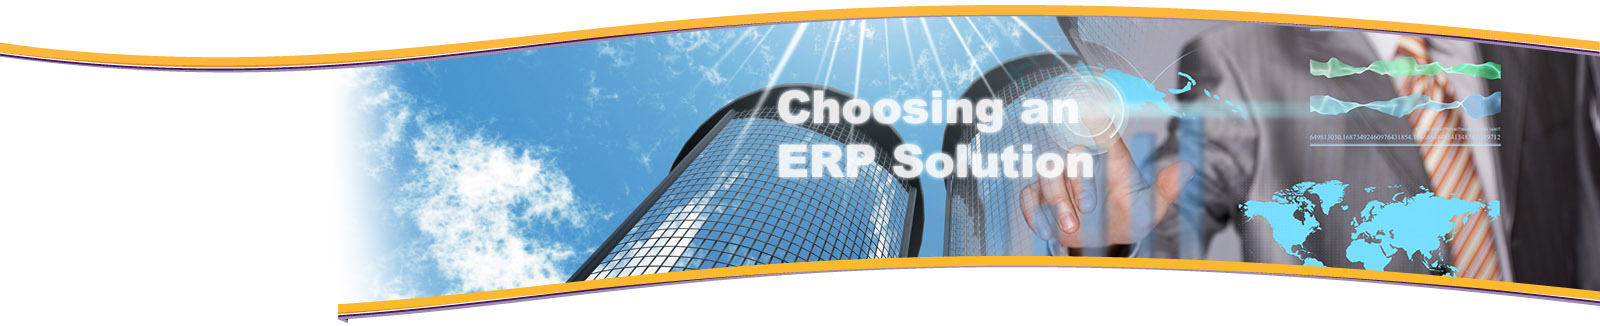 Choosing an ERP solution